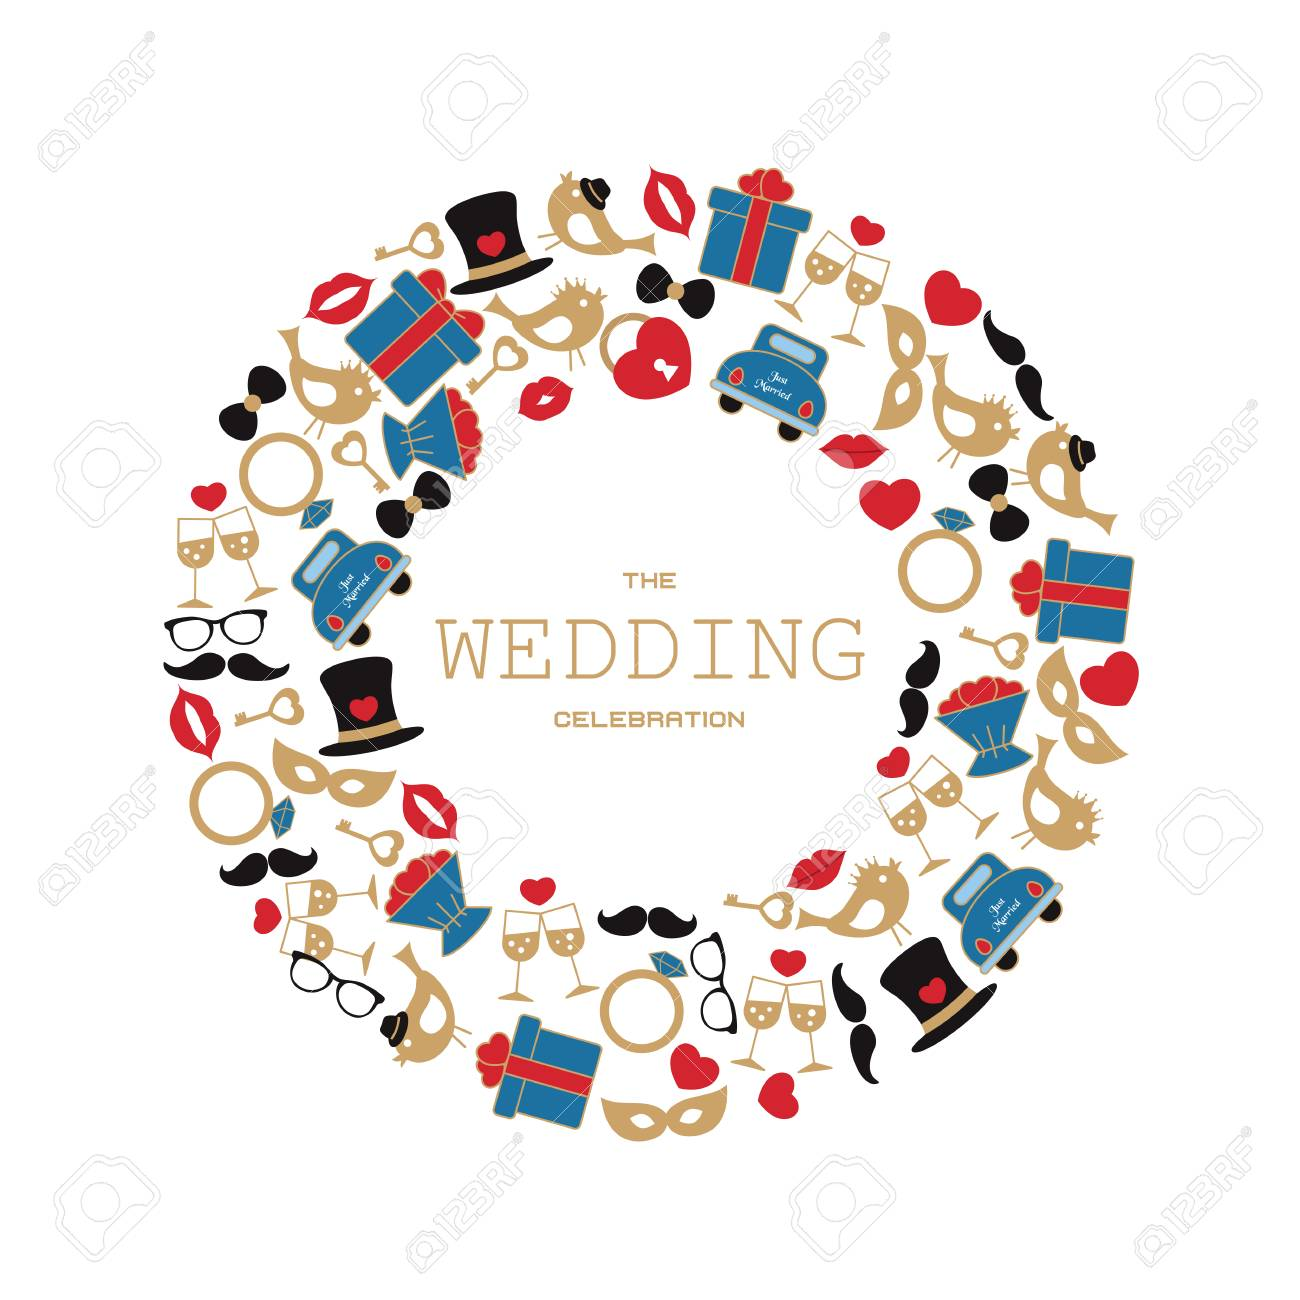 wedding vector background with wedding objects and icons can rh 123rf com free wedding vectors for commercial use free wedding vectors downloads